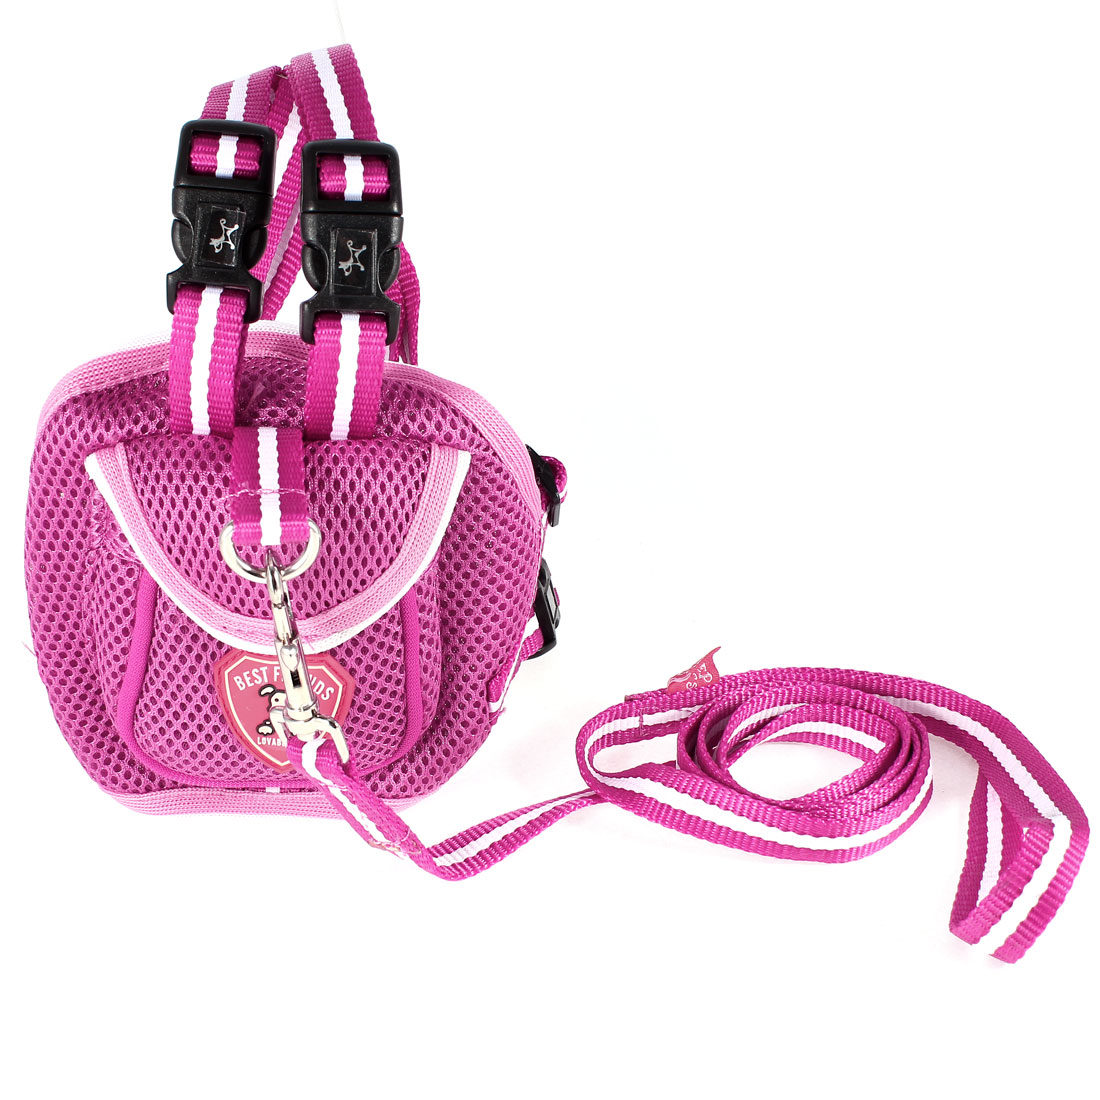 Lobster Clasp Leash Pet Dog Puppy Backpack Harness Fuchsia Size S